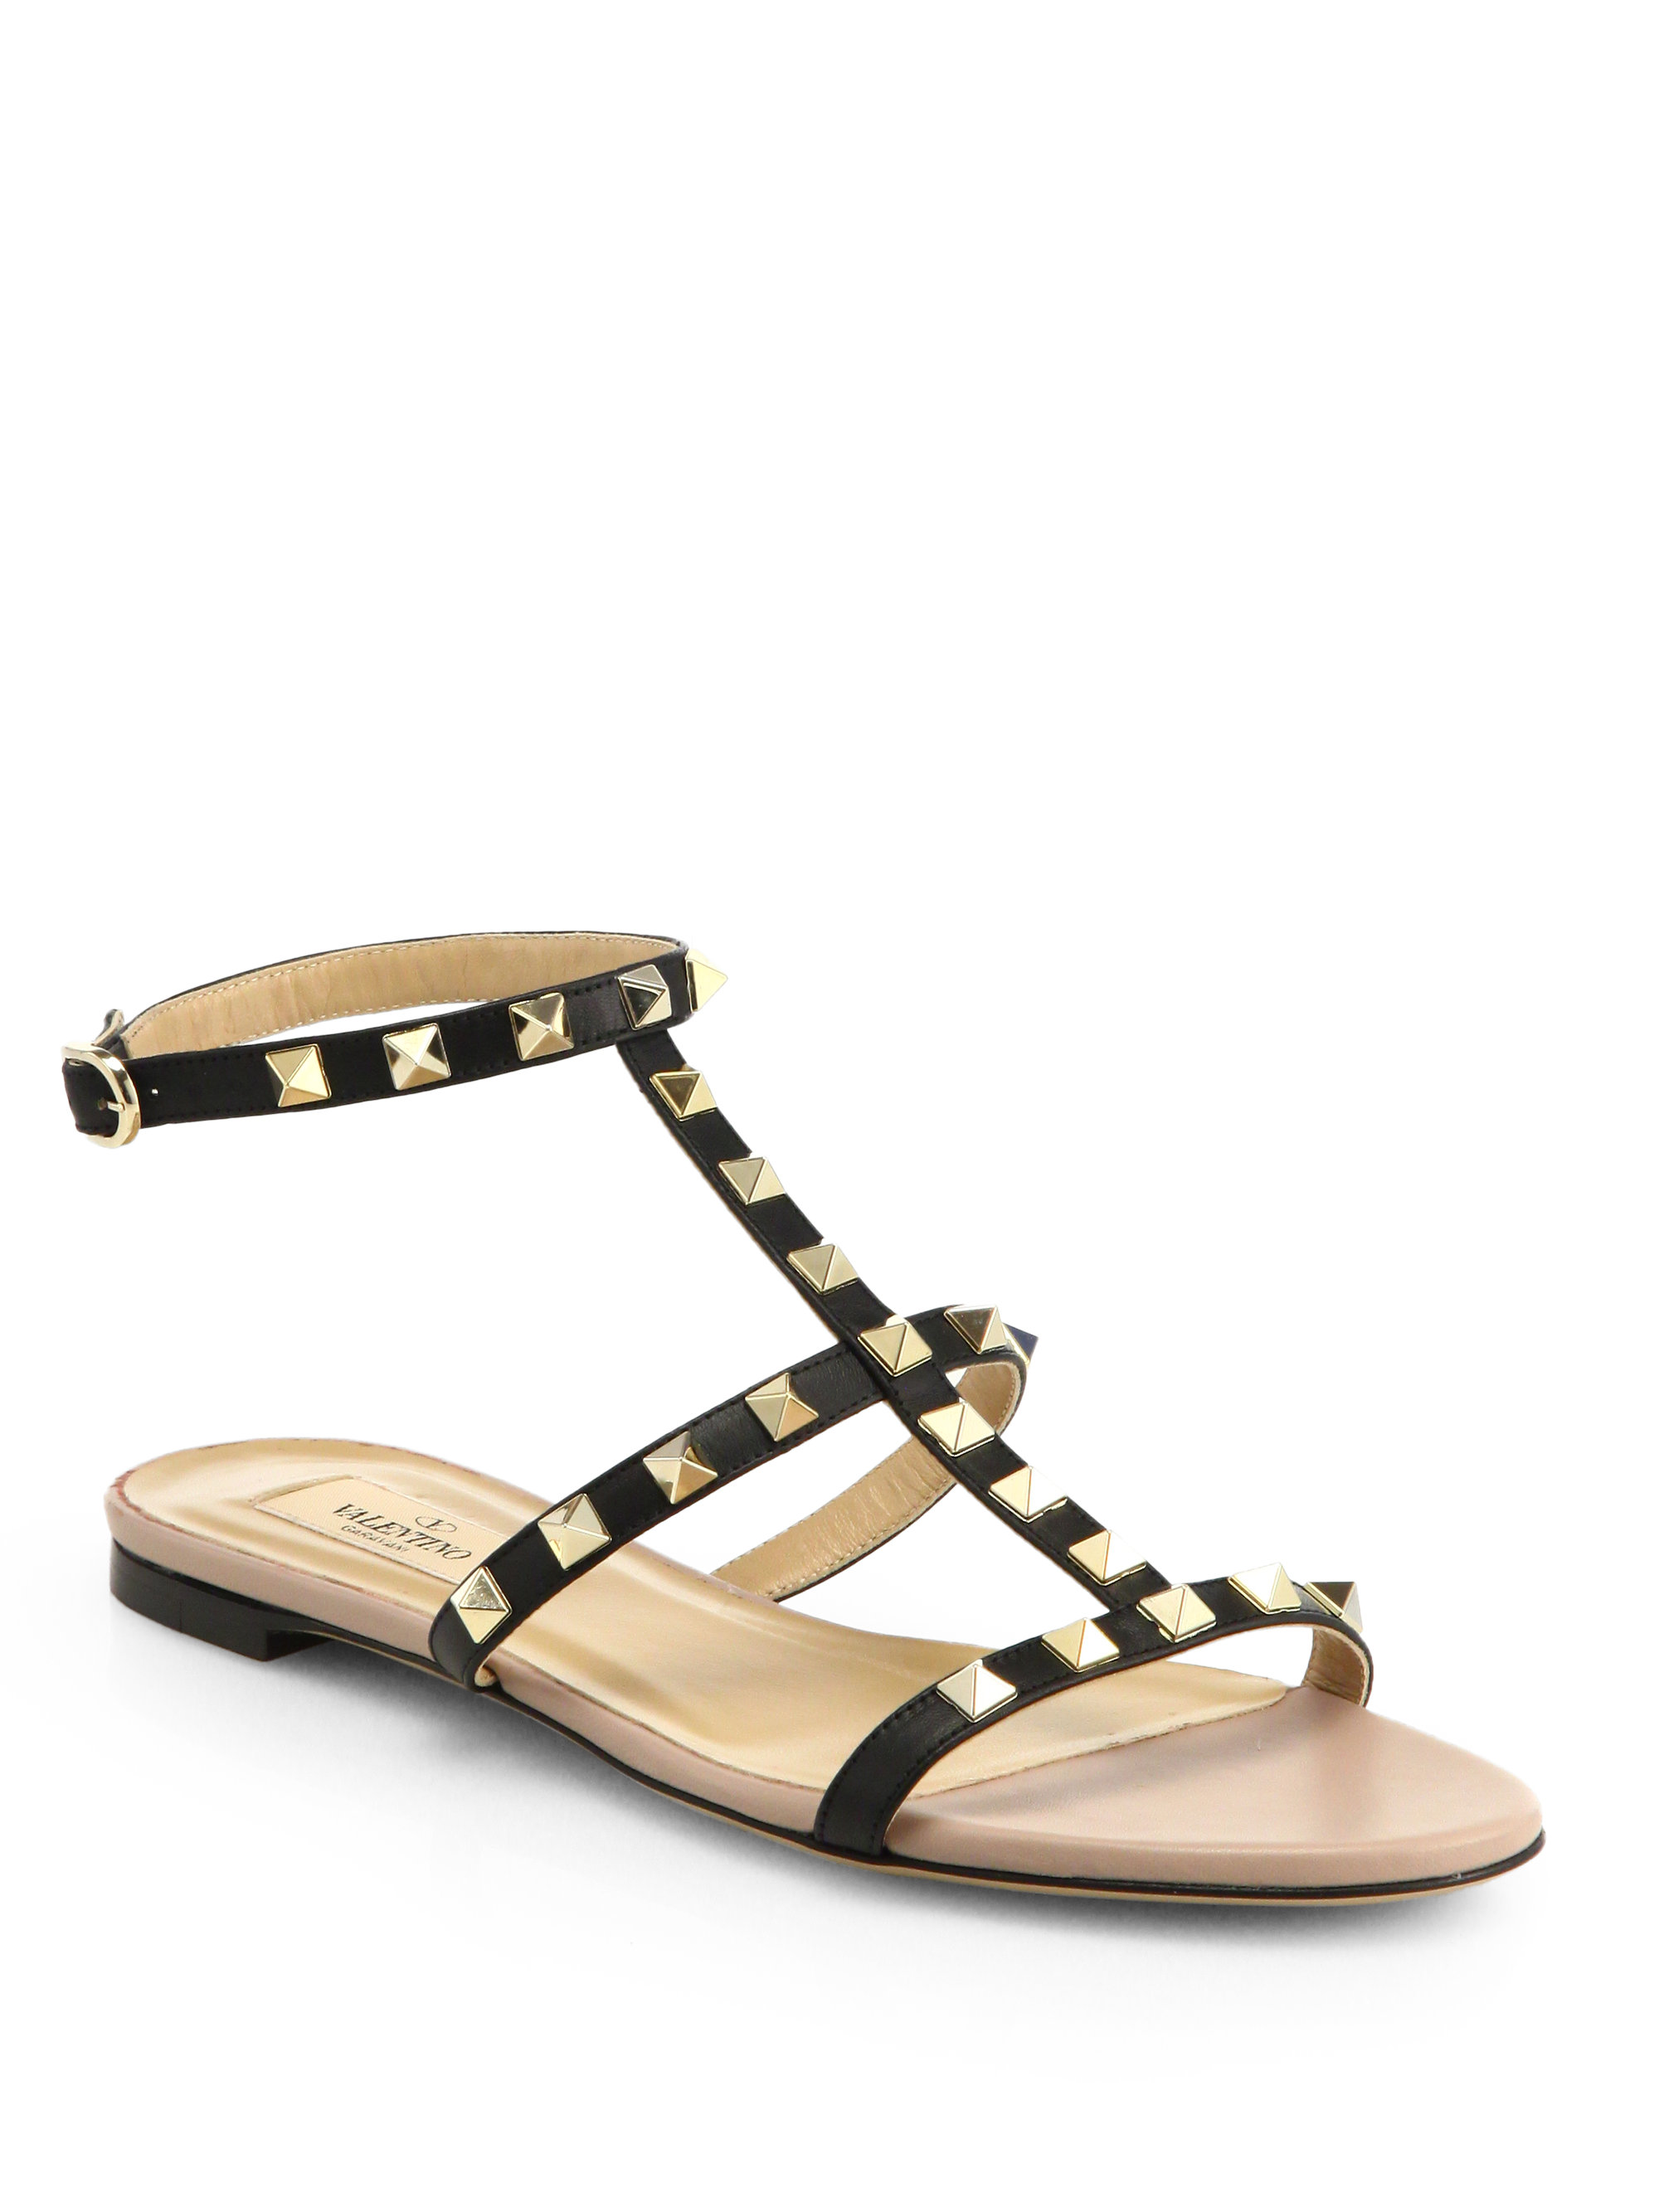 Valentino Rockstud Leather Gladiator Sandals In Black  Lyst-1592